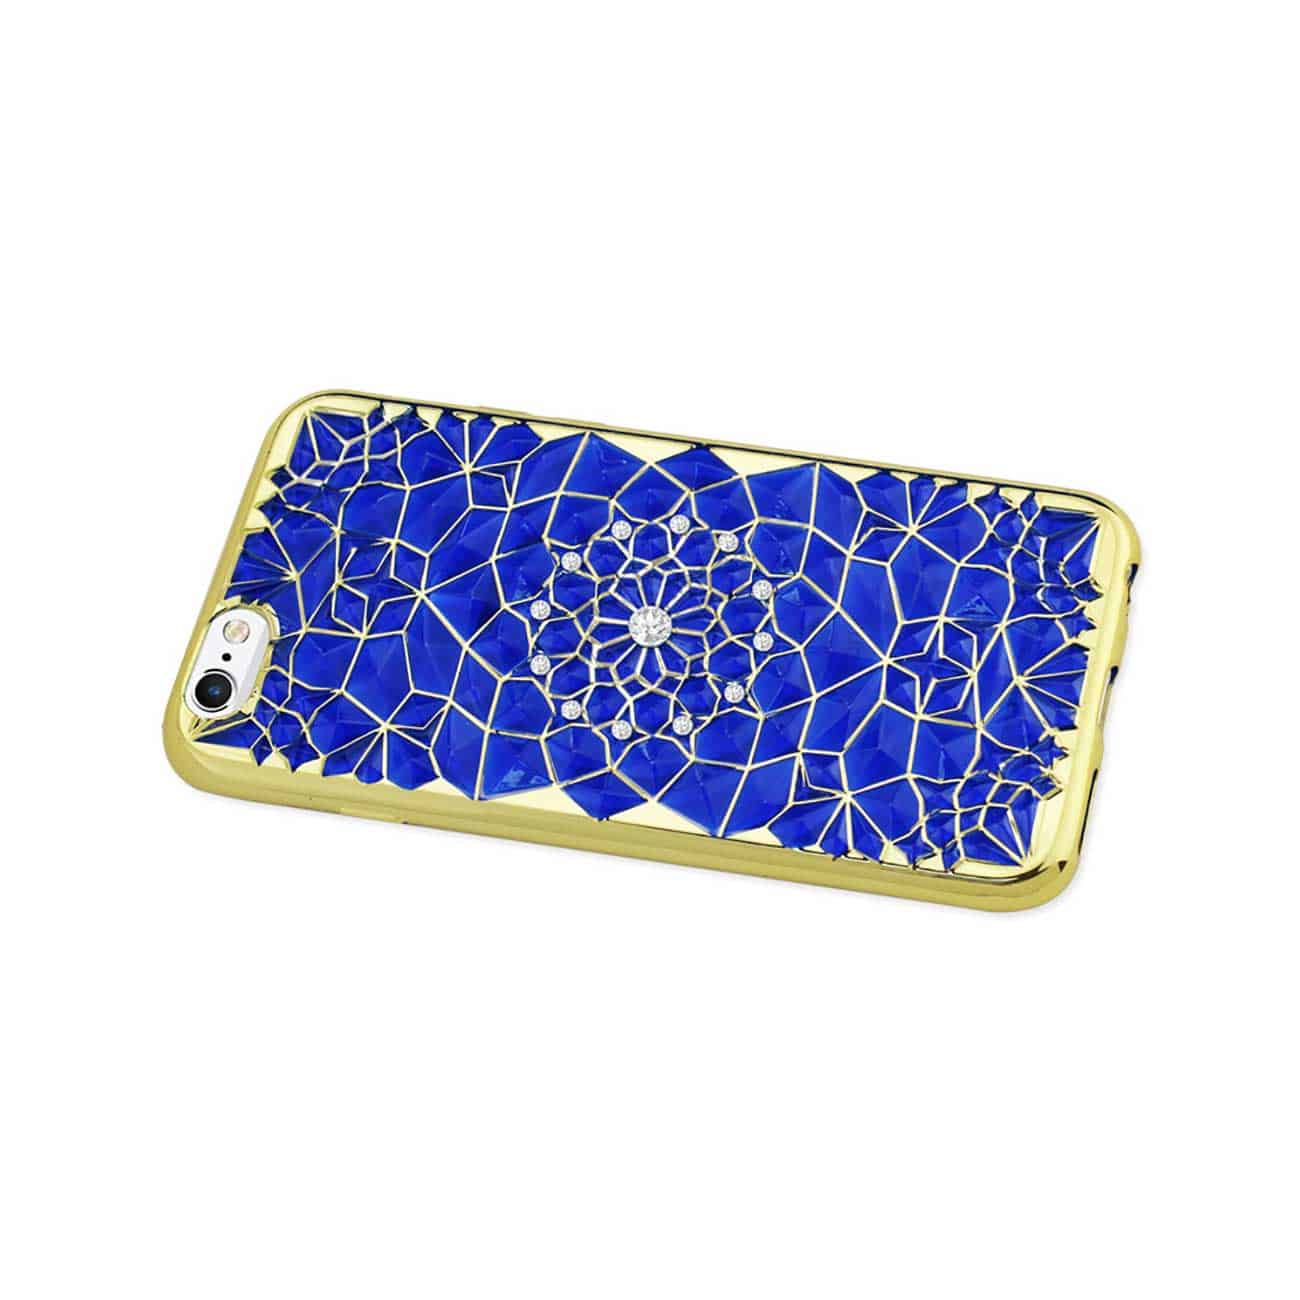 IPHONE 6 PLUS/ 6S PLUS SOFT TPU CASE WITH SPARKLING DIAMOND SUNFLOWER DESIGN IN NAVY